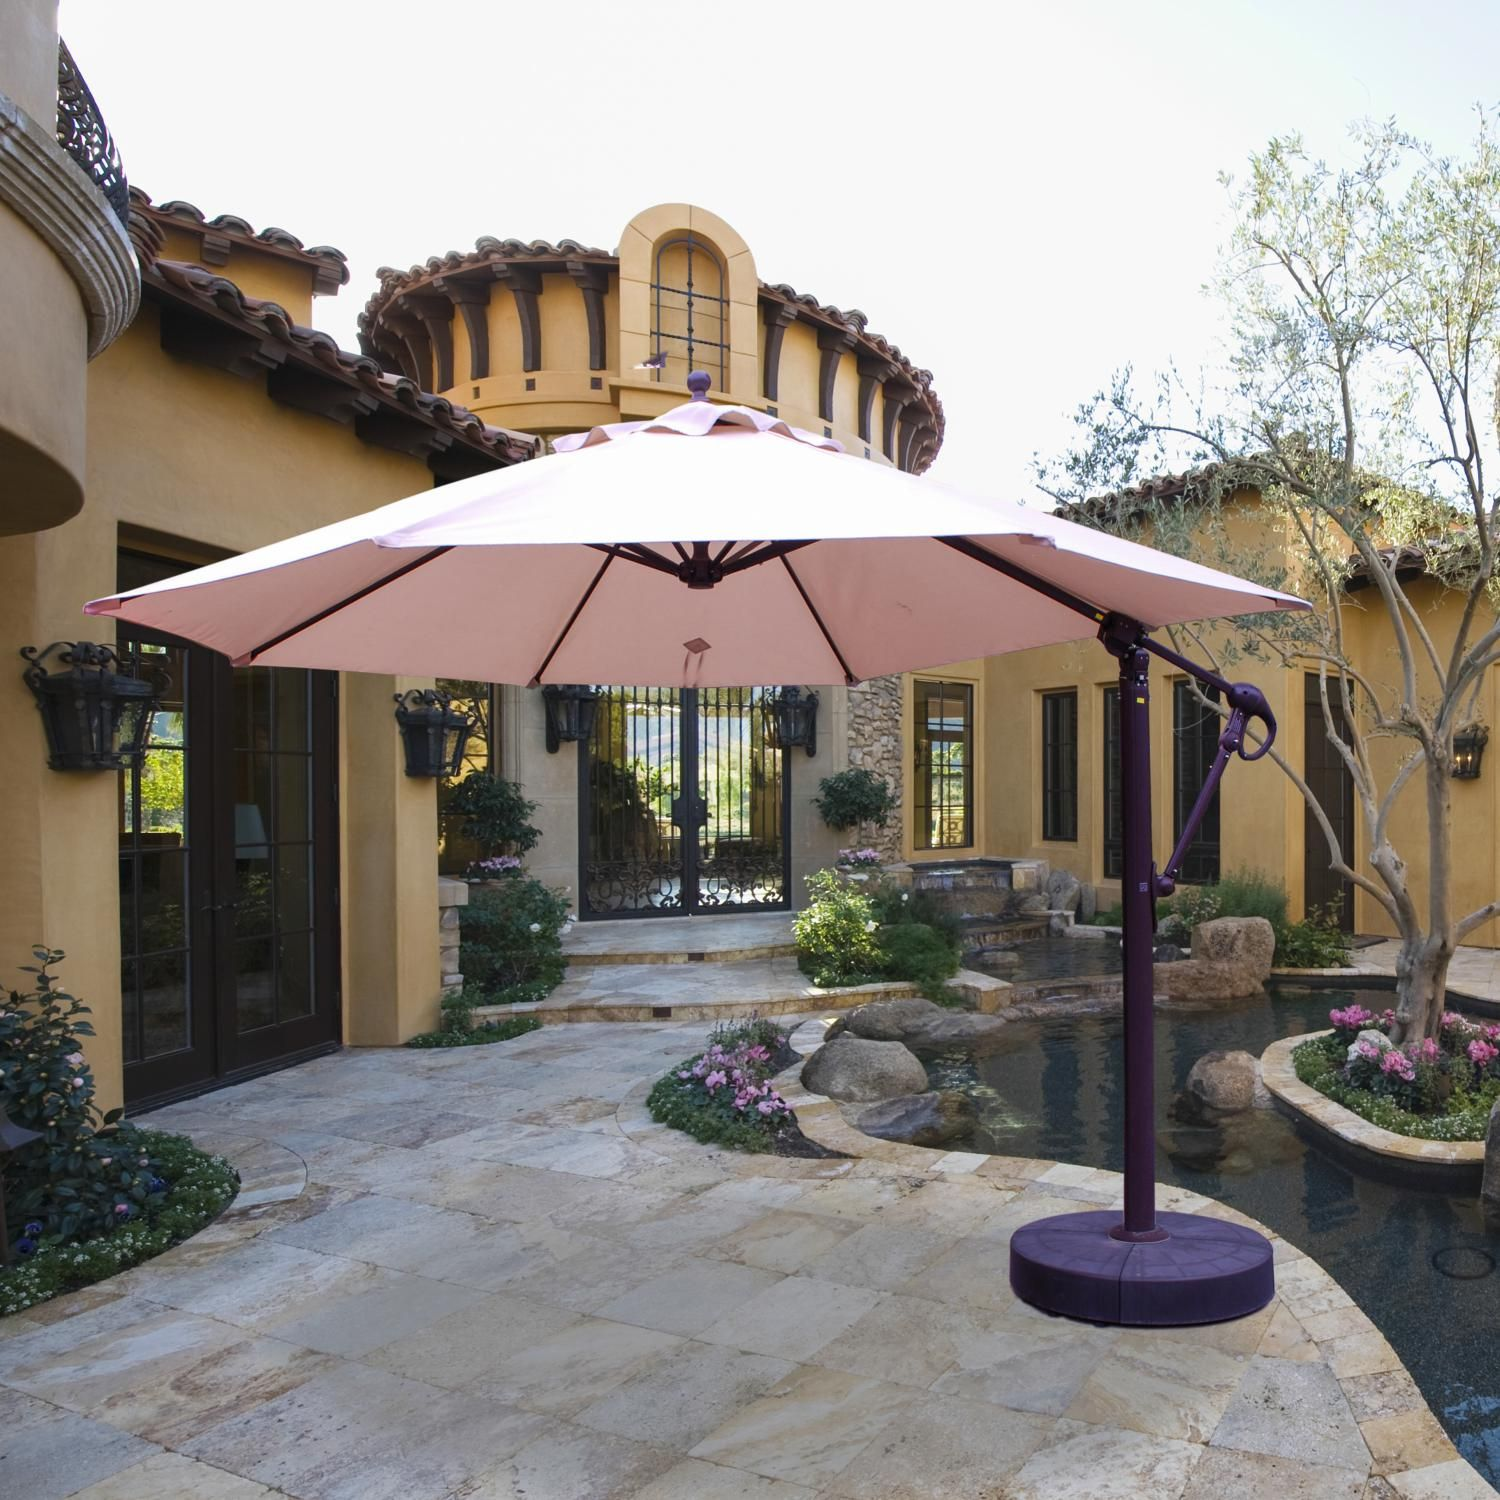 This patio umbrella allows for flexible placement options in your